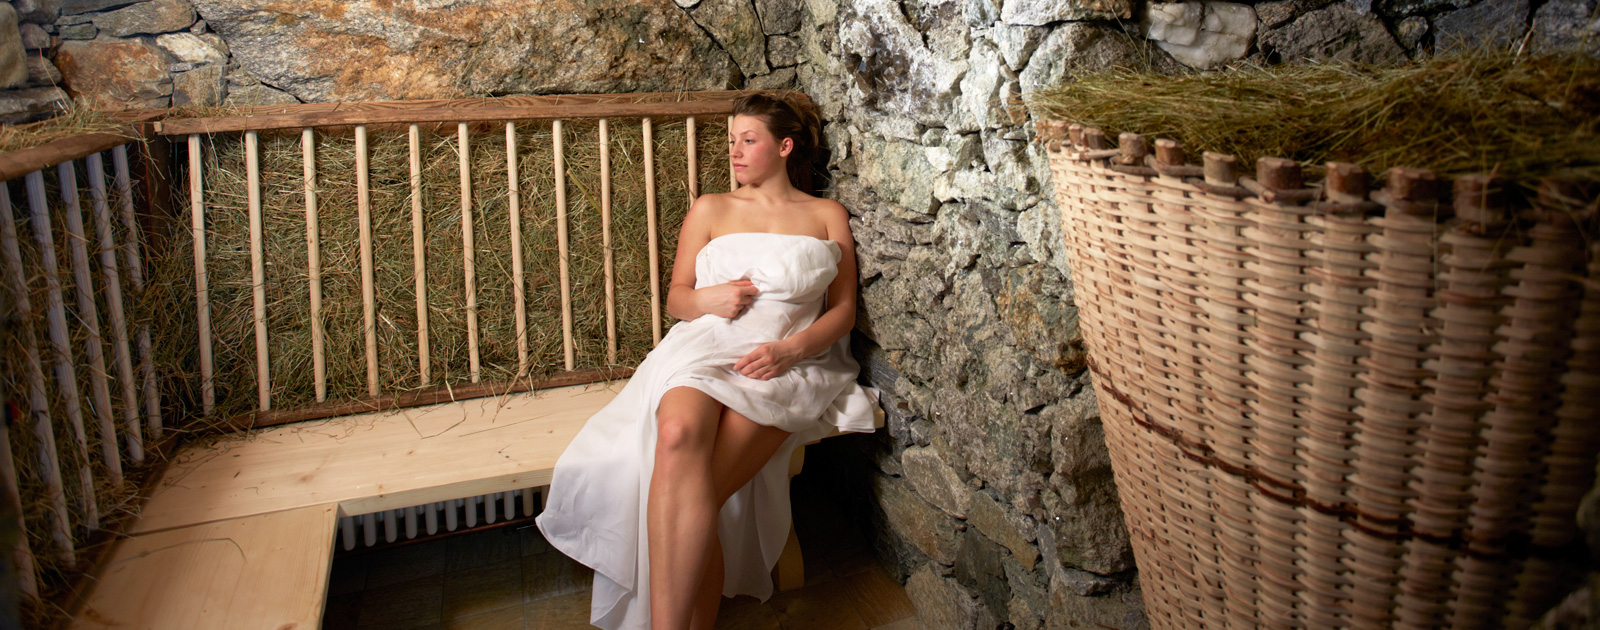 Saunas and Turkish bath